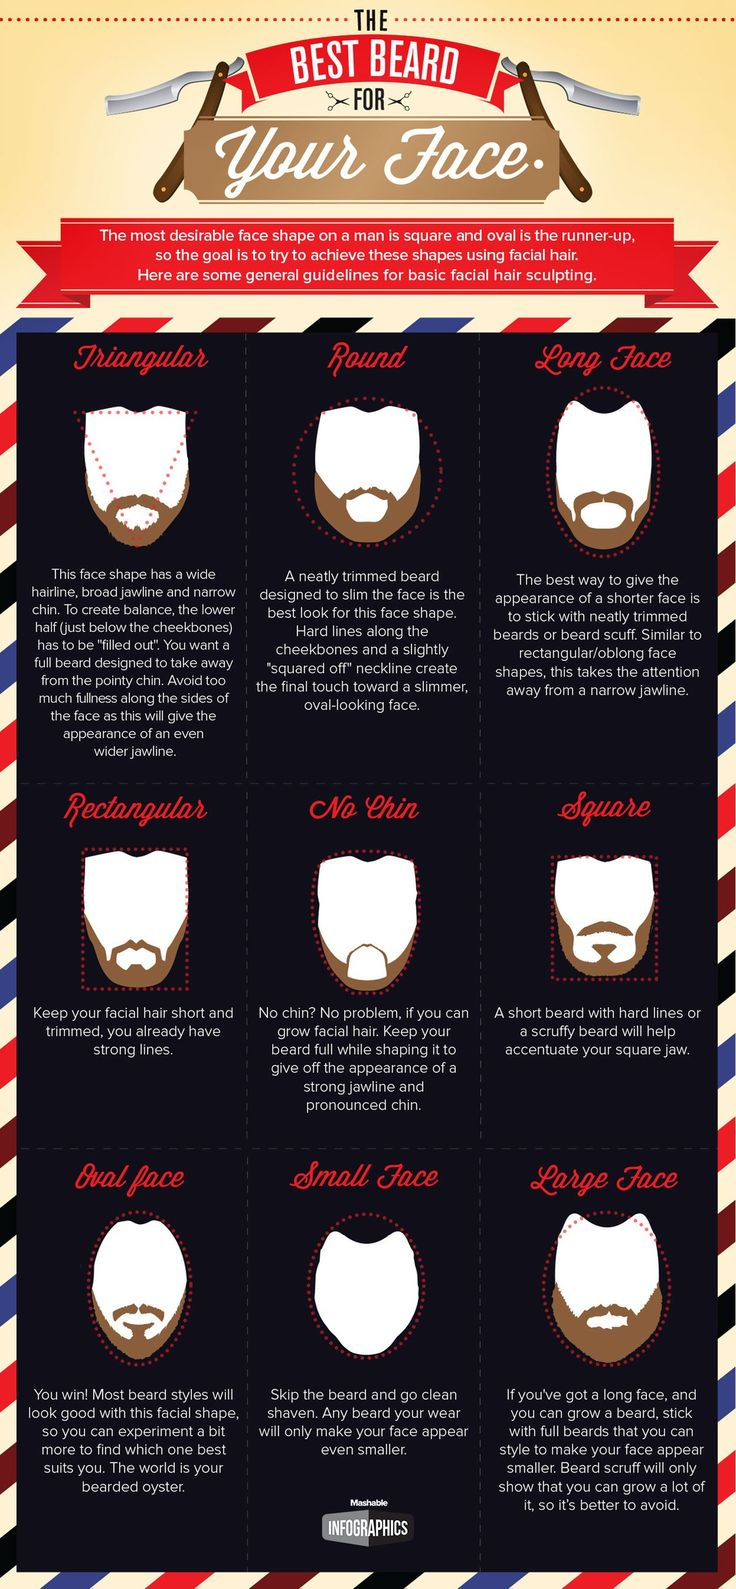 The best beard for your face